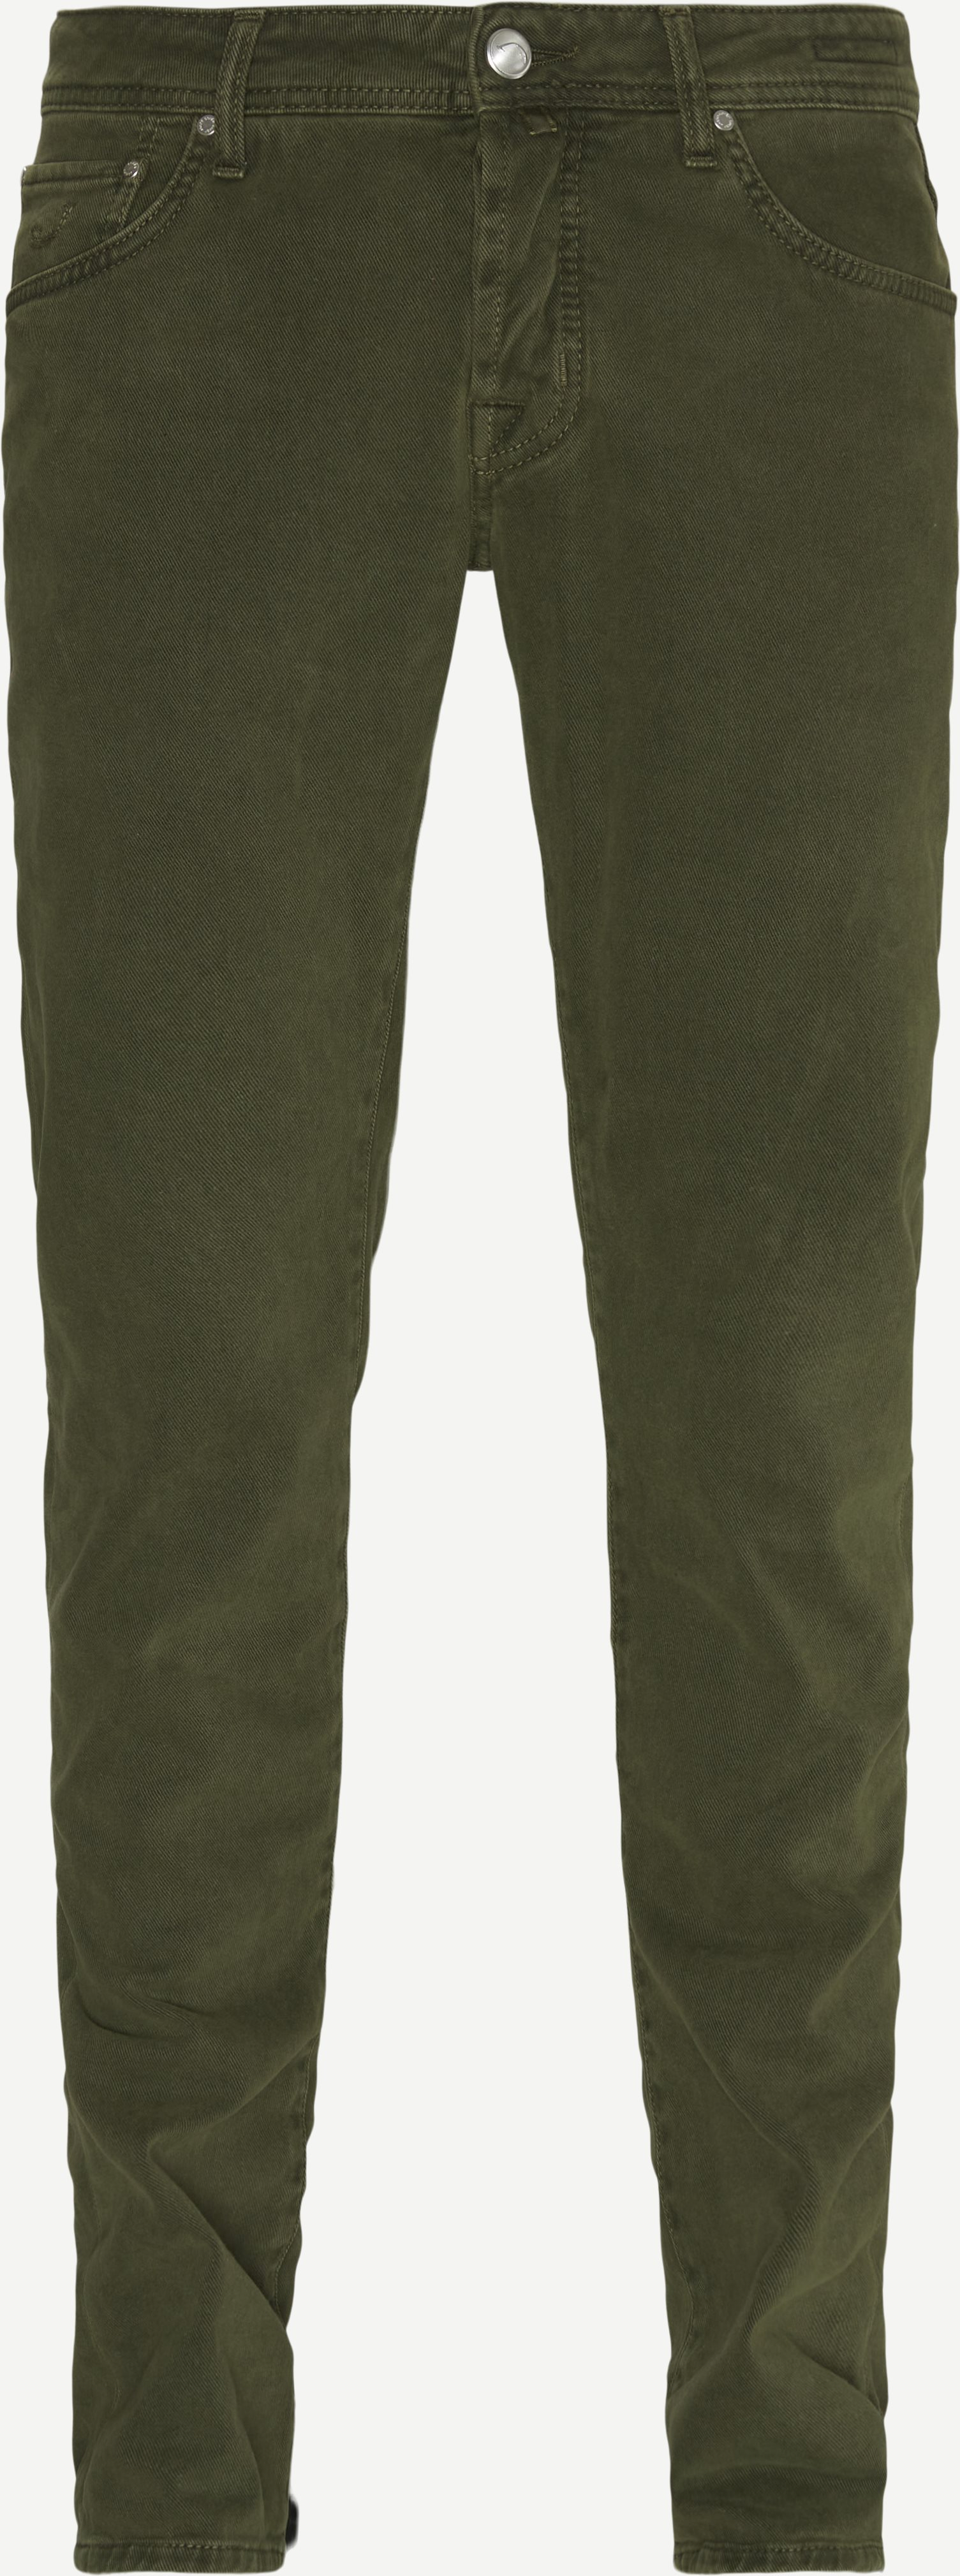 Jeans - Army